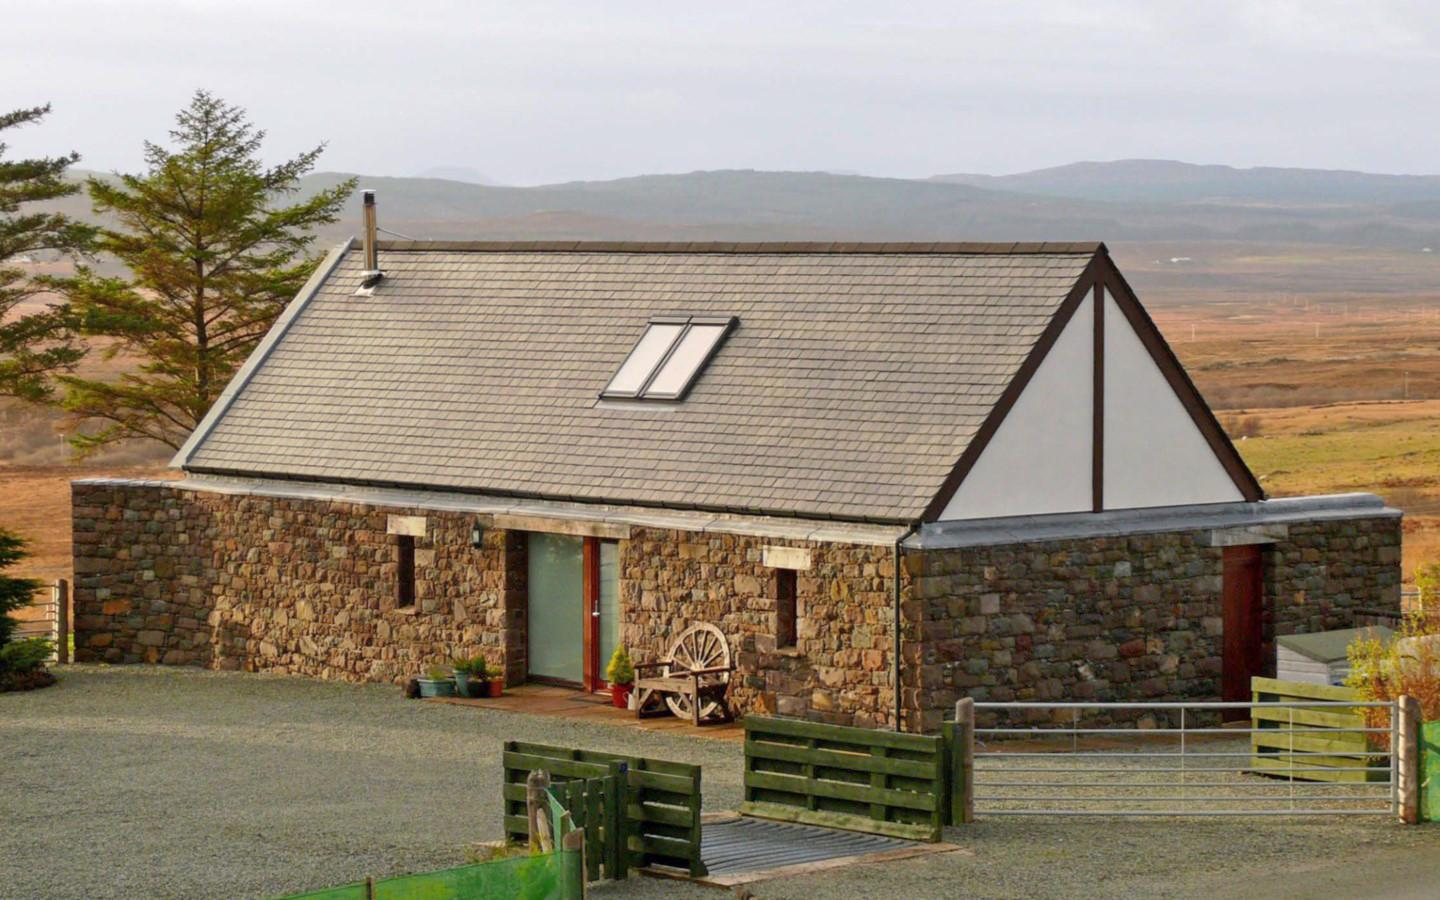 Isle Skye Self Catering Holiday Accommodation